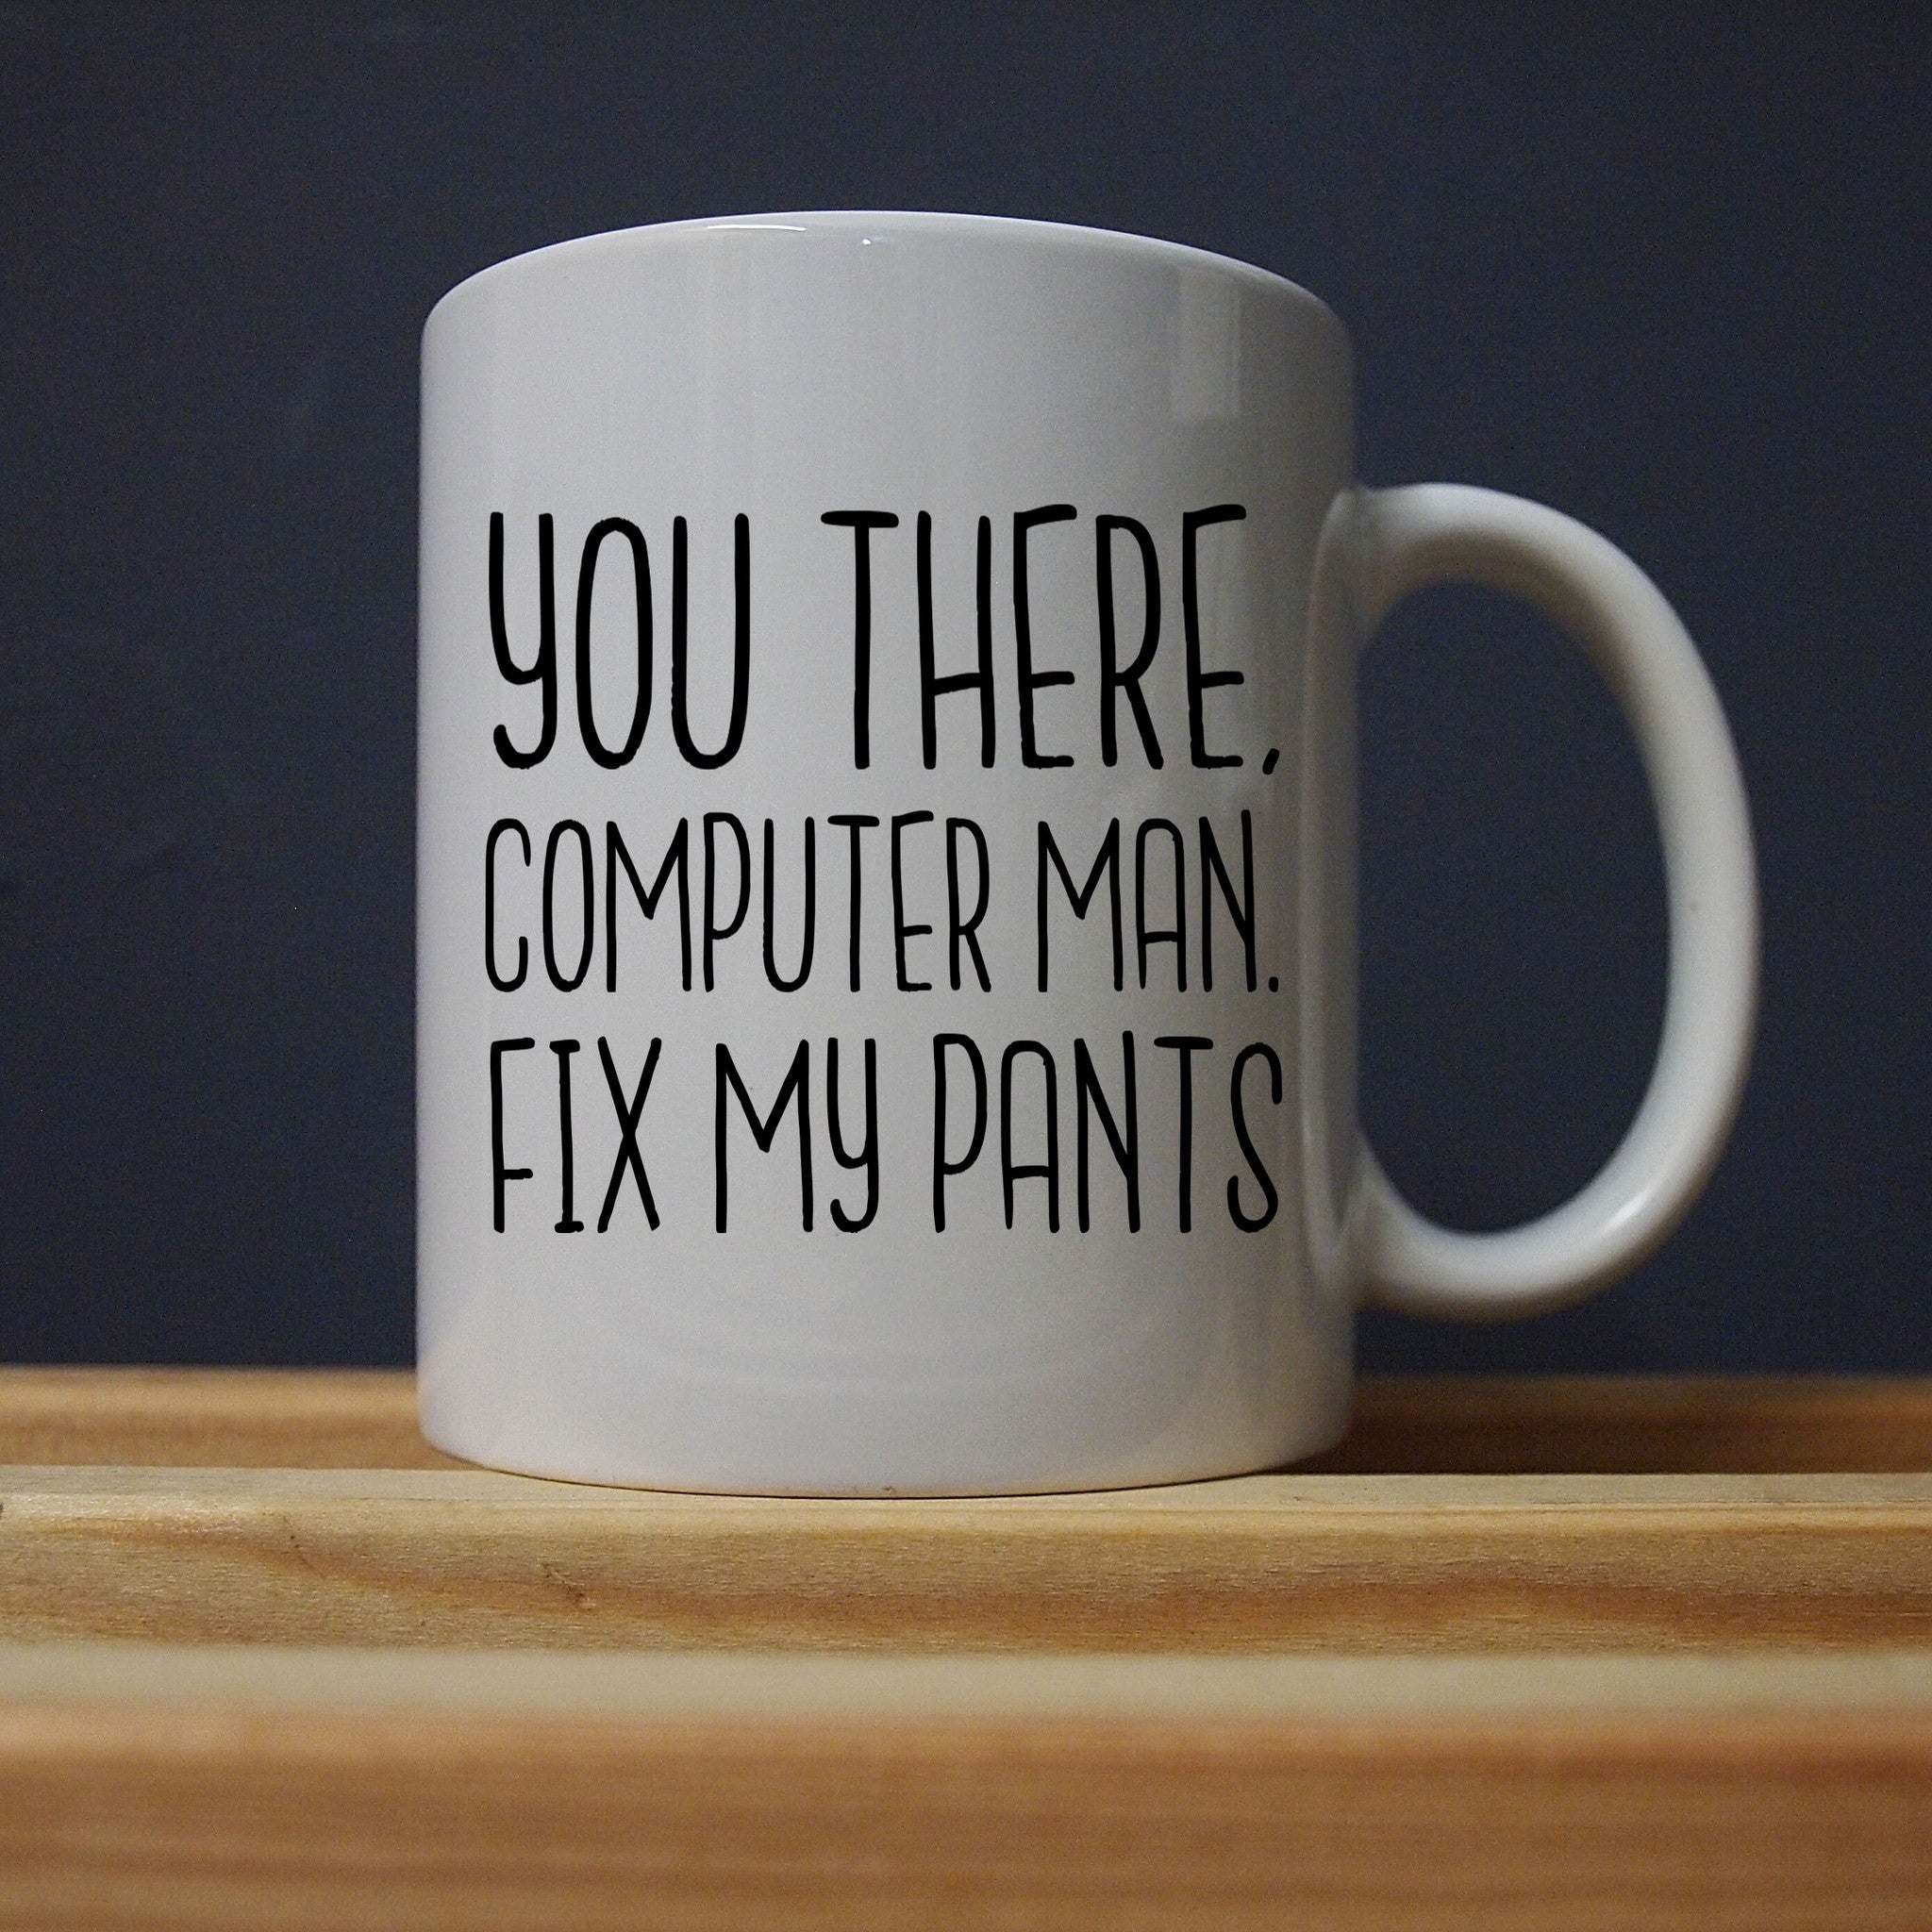 IT Crowd - Reynholm - Fix My Pants Mug - Jiggle Apparel